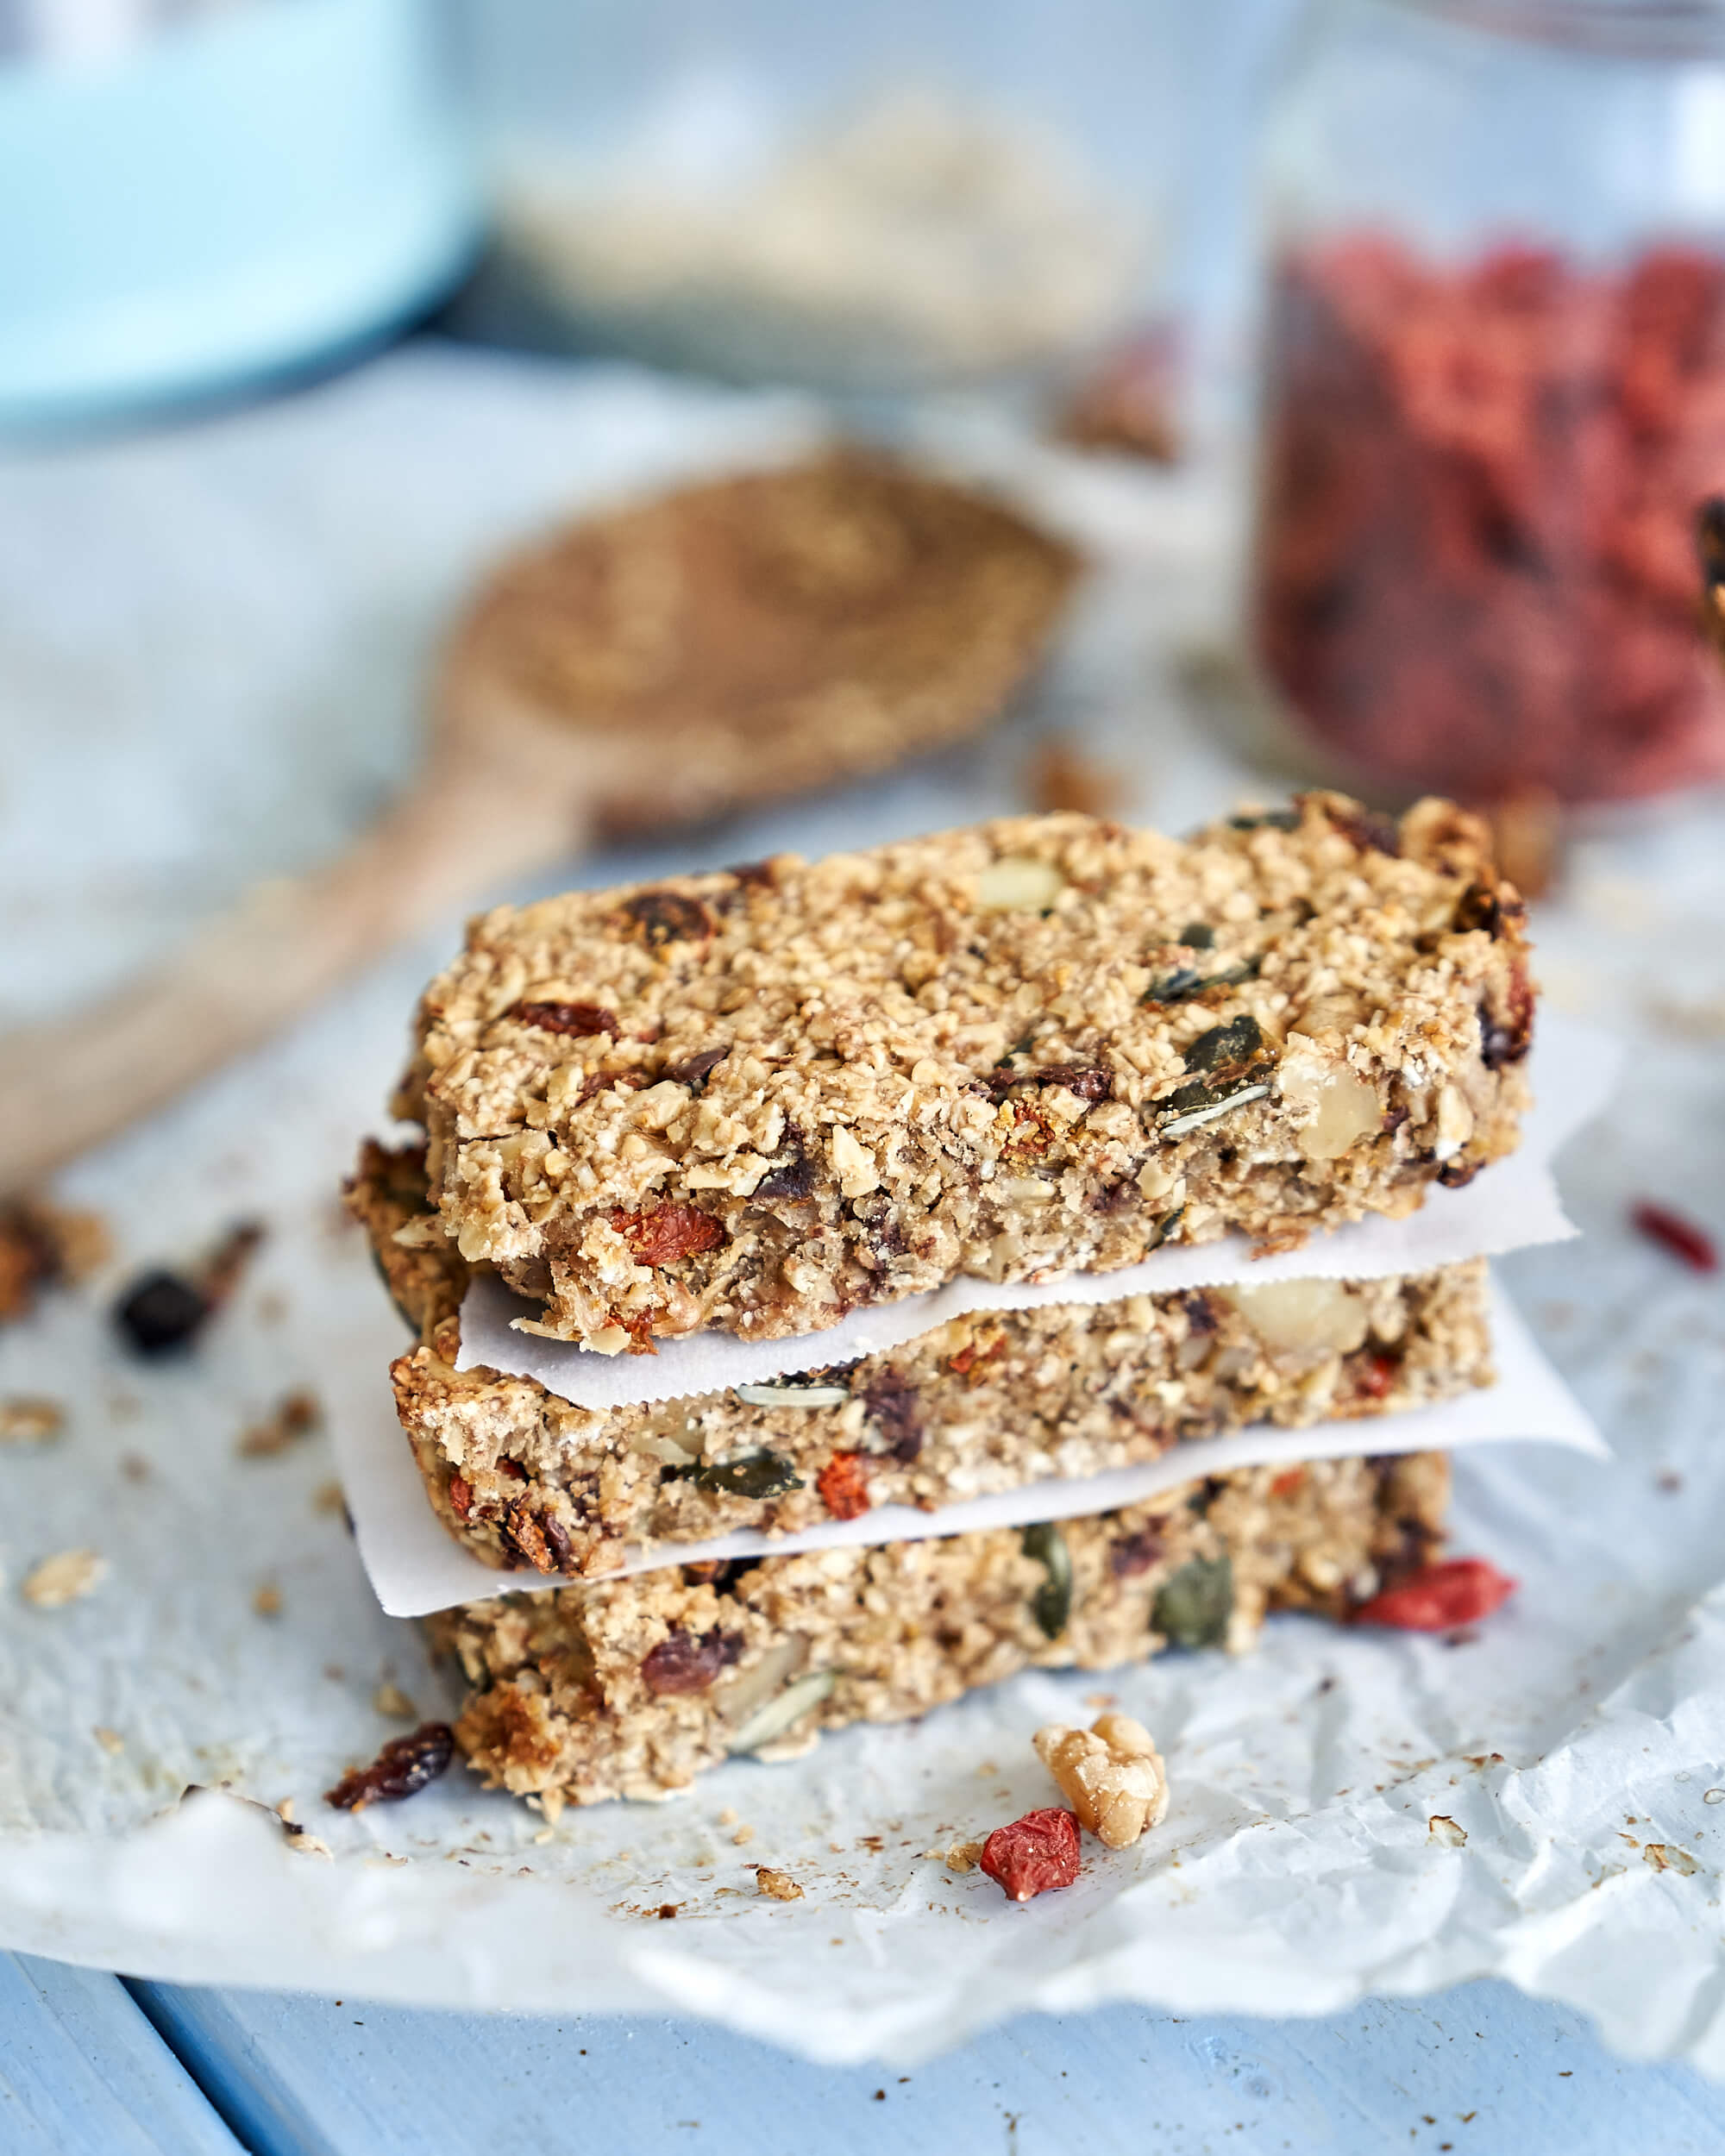 Superfood Granola Bars stacked